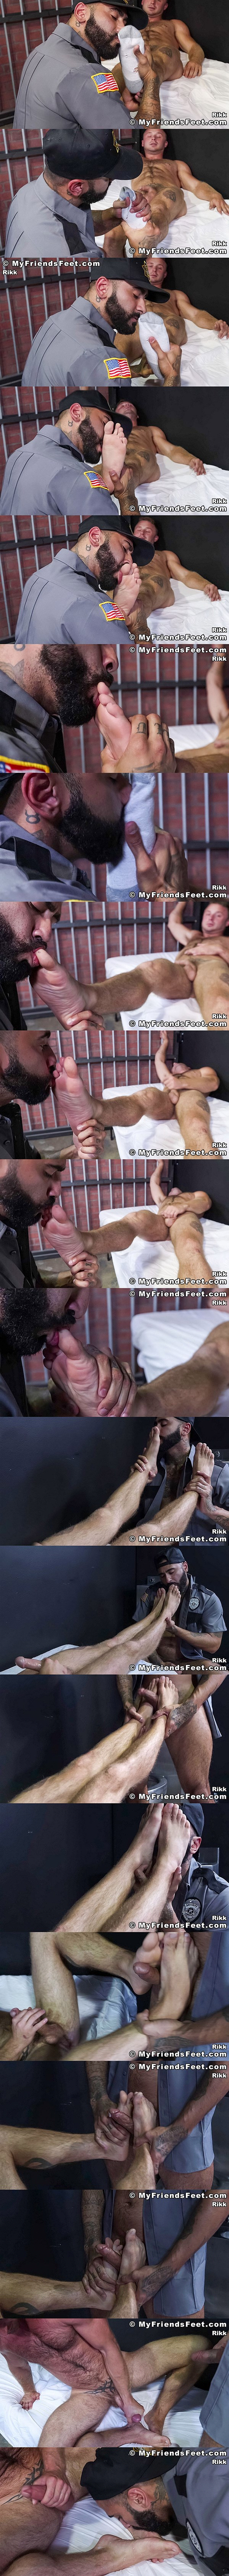 Newcomer Chad Tyler (aka Chad Taylor) gets his sports socks and bare feet worshiped by gay porn star Rikk York before Rikk foot fucks Chad in Guard Rikk Owns Chad's Feet at Myfriendsfeet 01